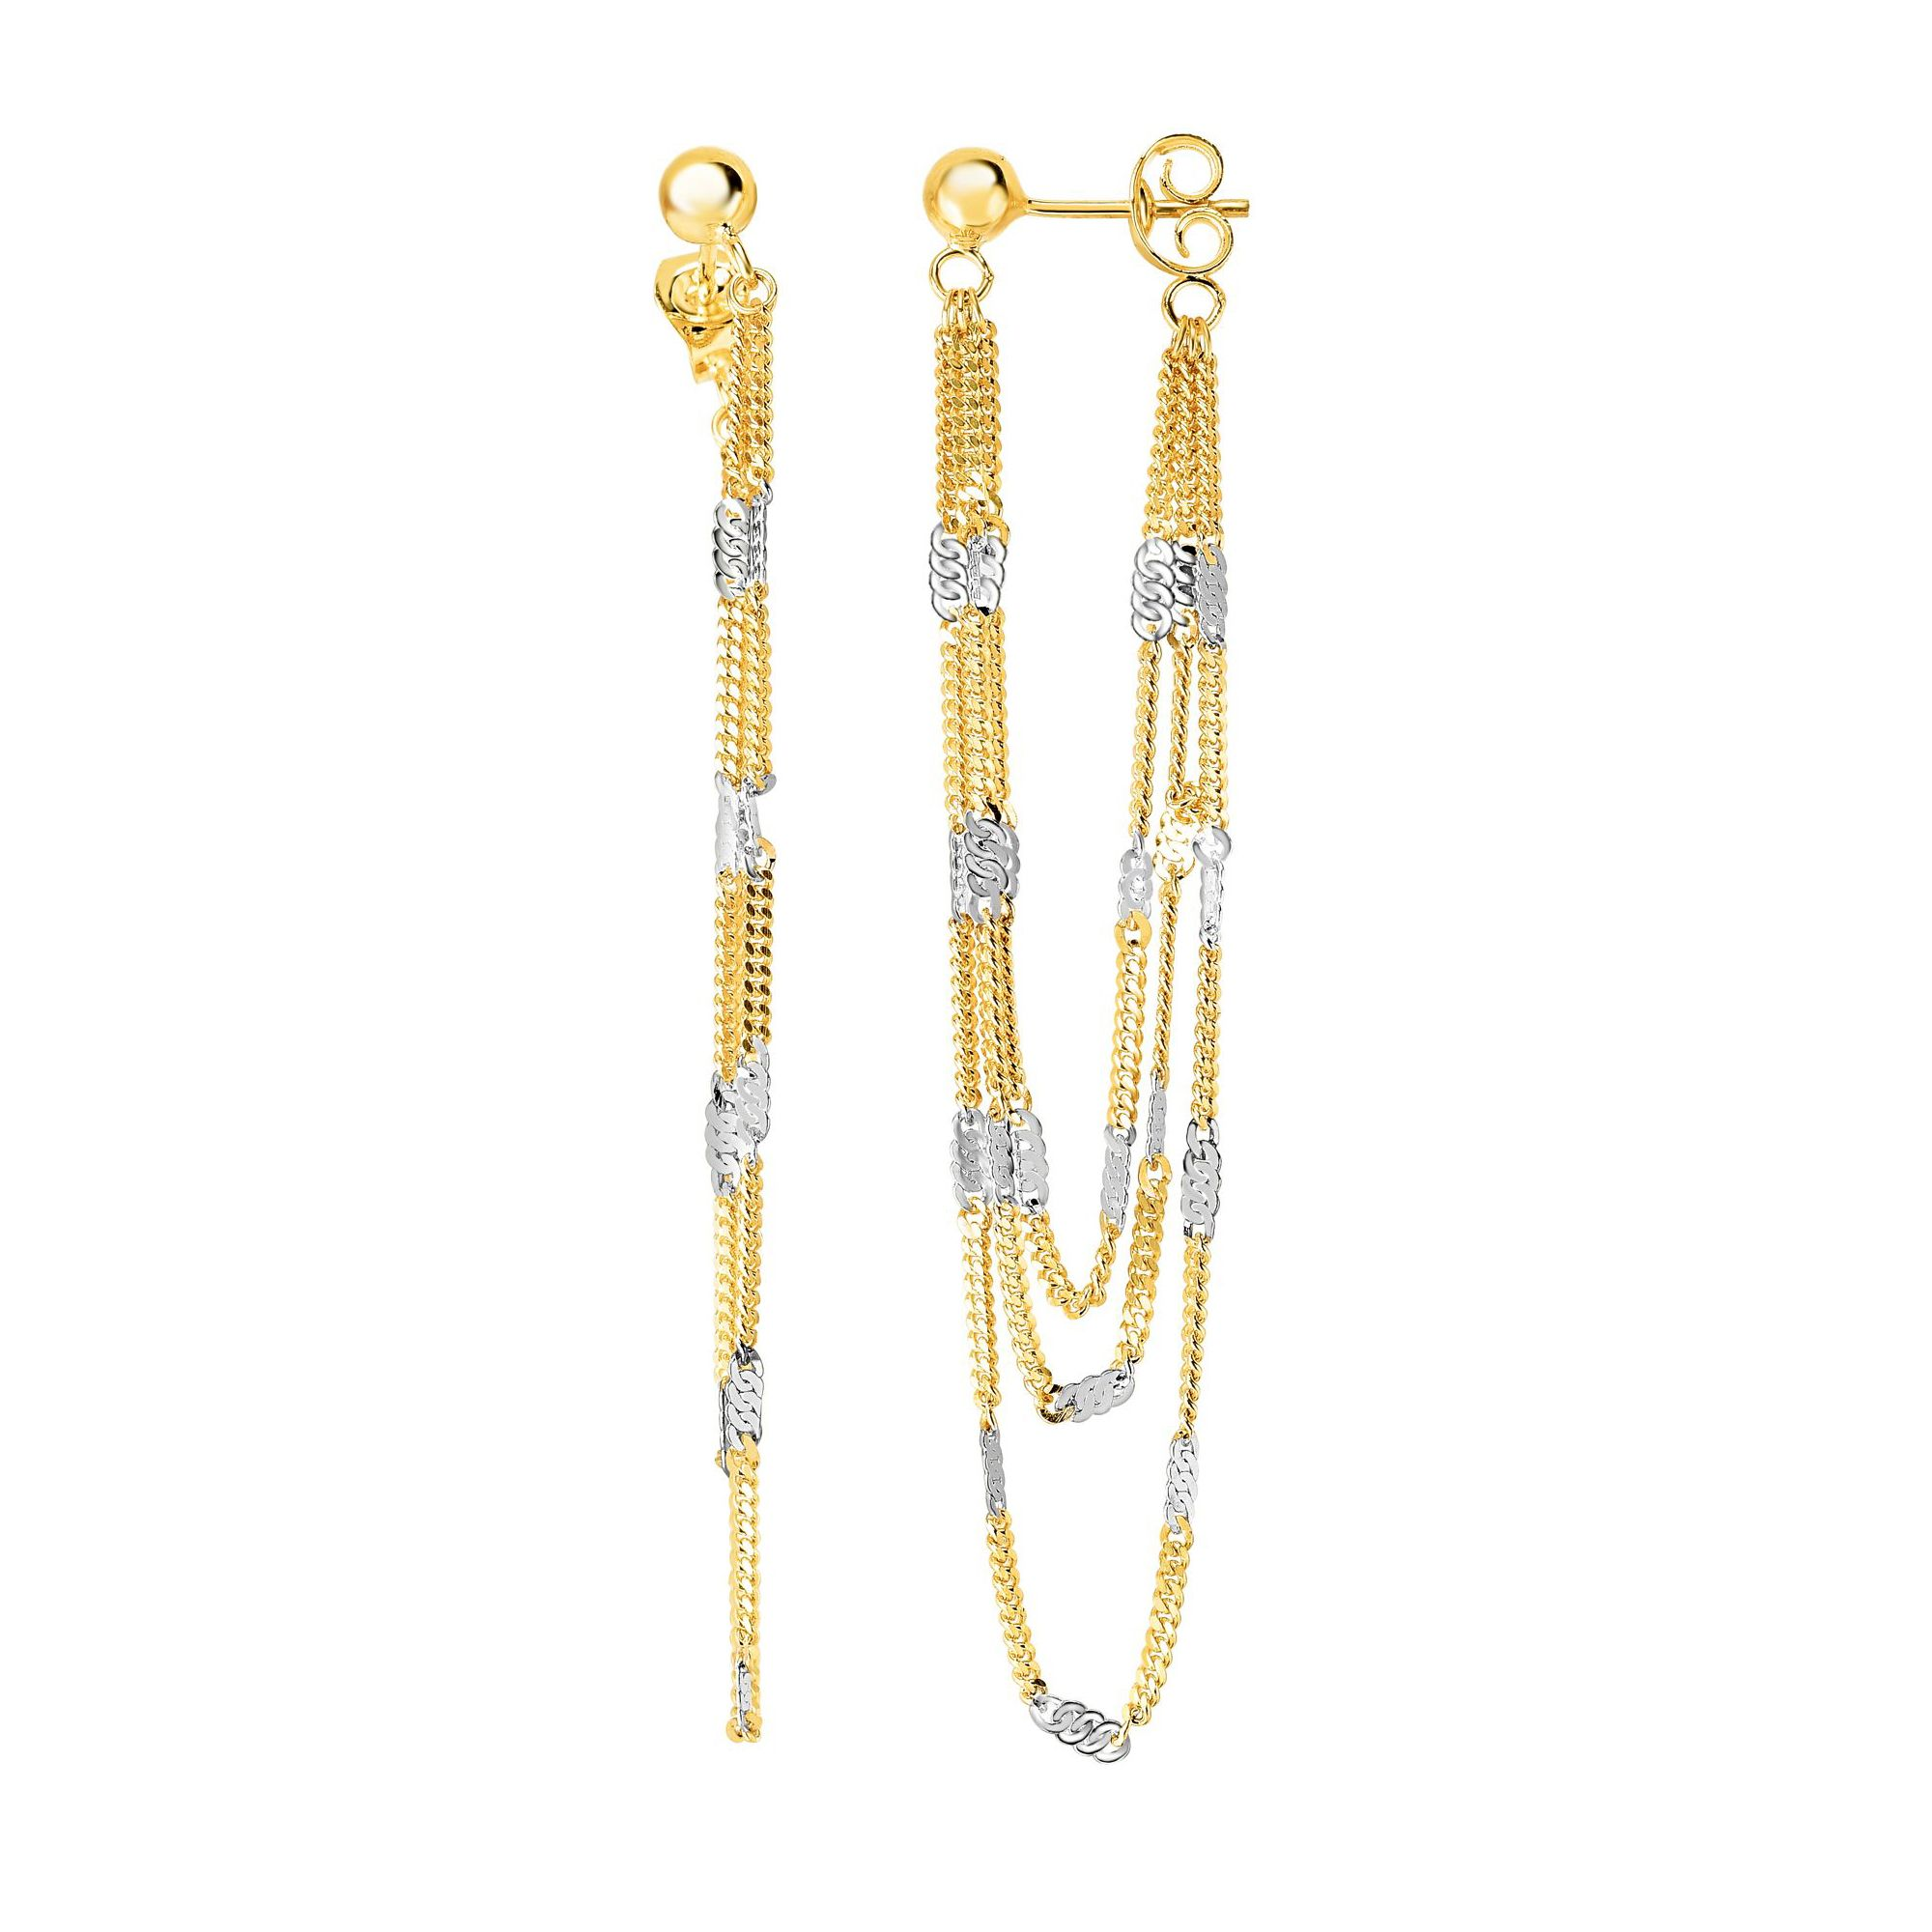 14 Karat Two Tone Gold Dangling Fancy Curb Link Chain Earrings